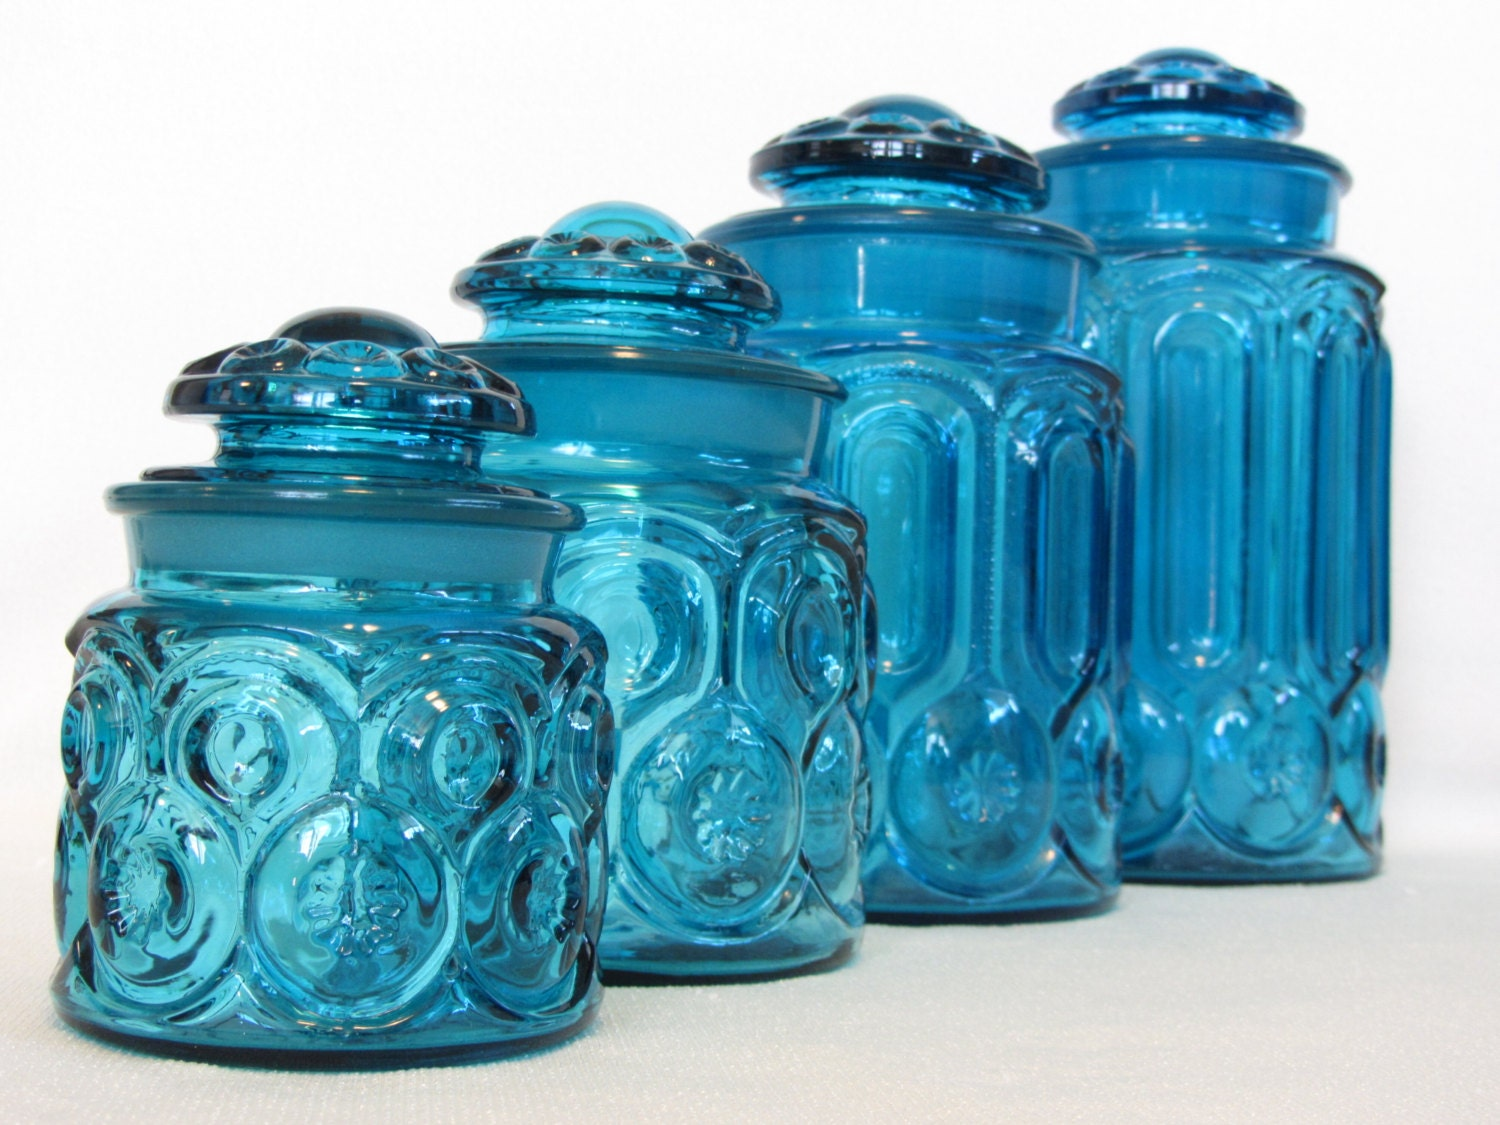 100 blue kitchen canister storage containers jars canisters world market glass canister - Blue glass kitchen canisters ...